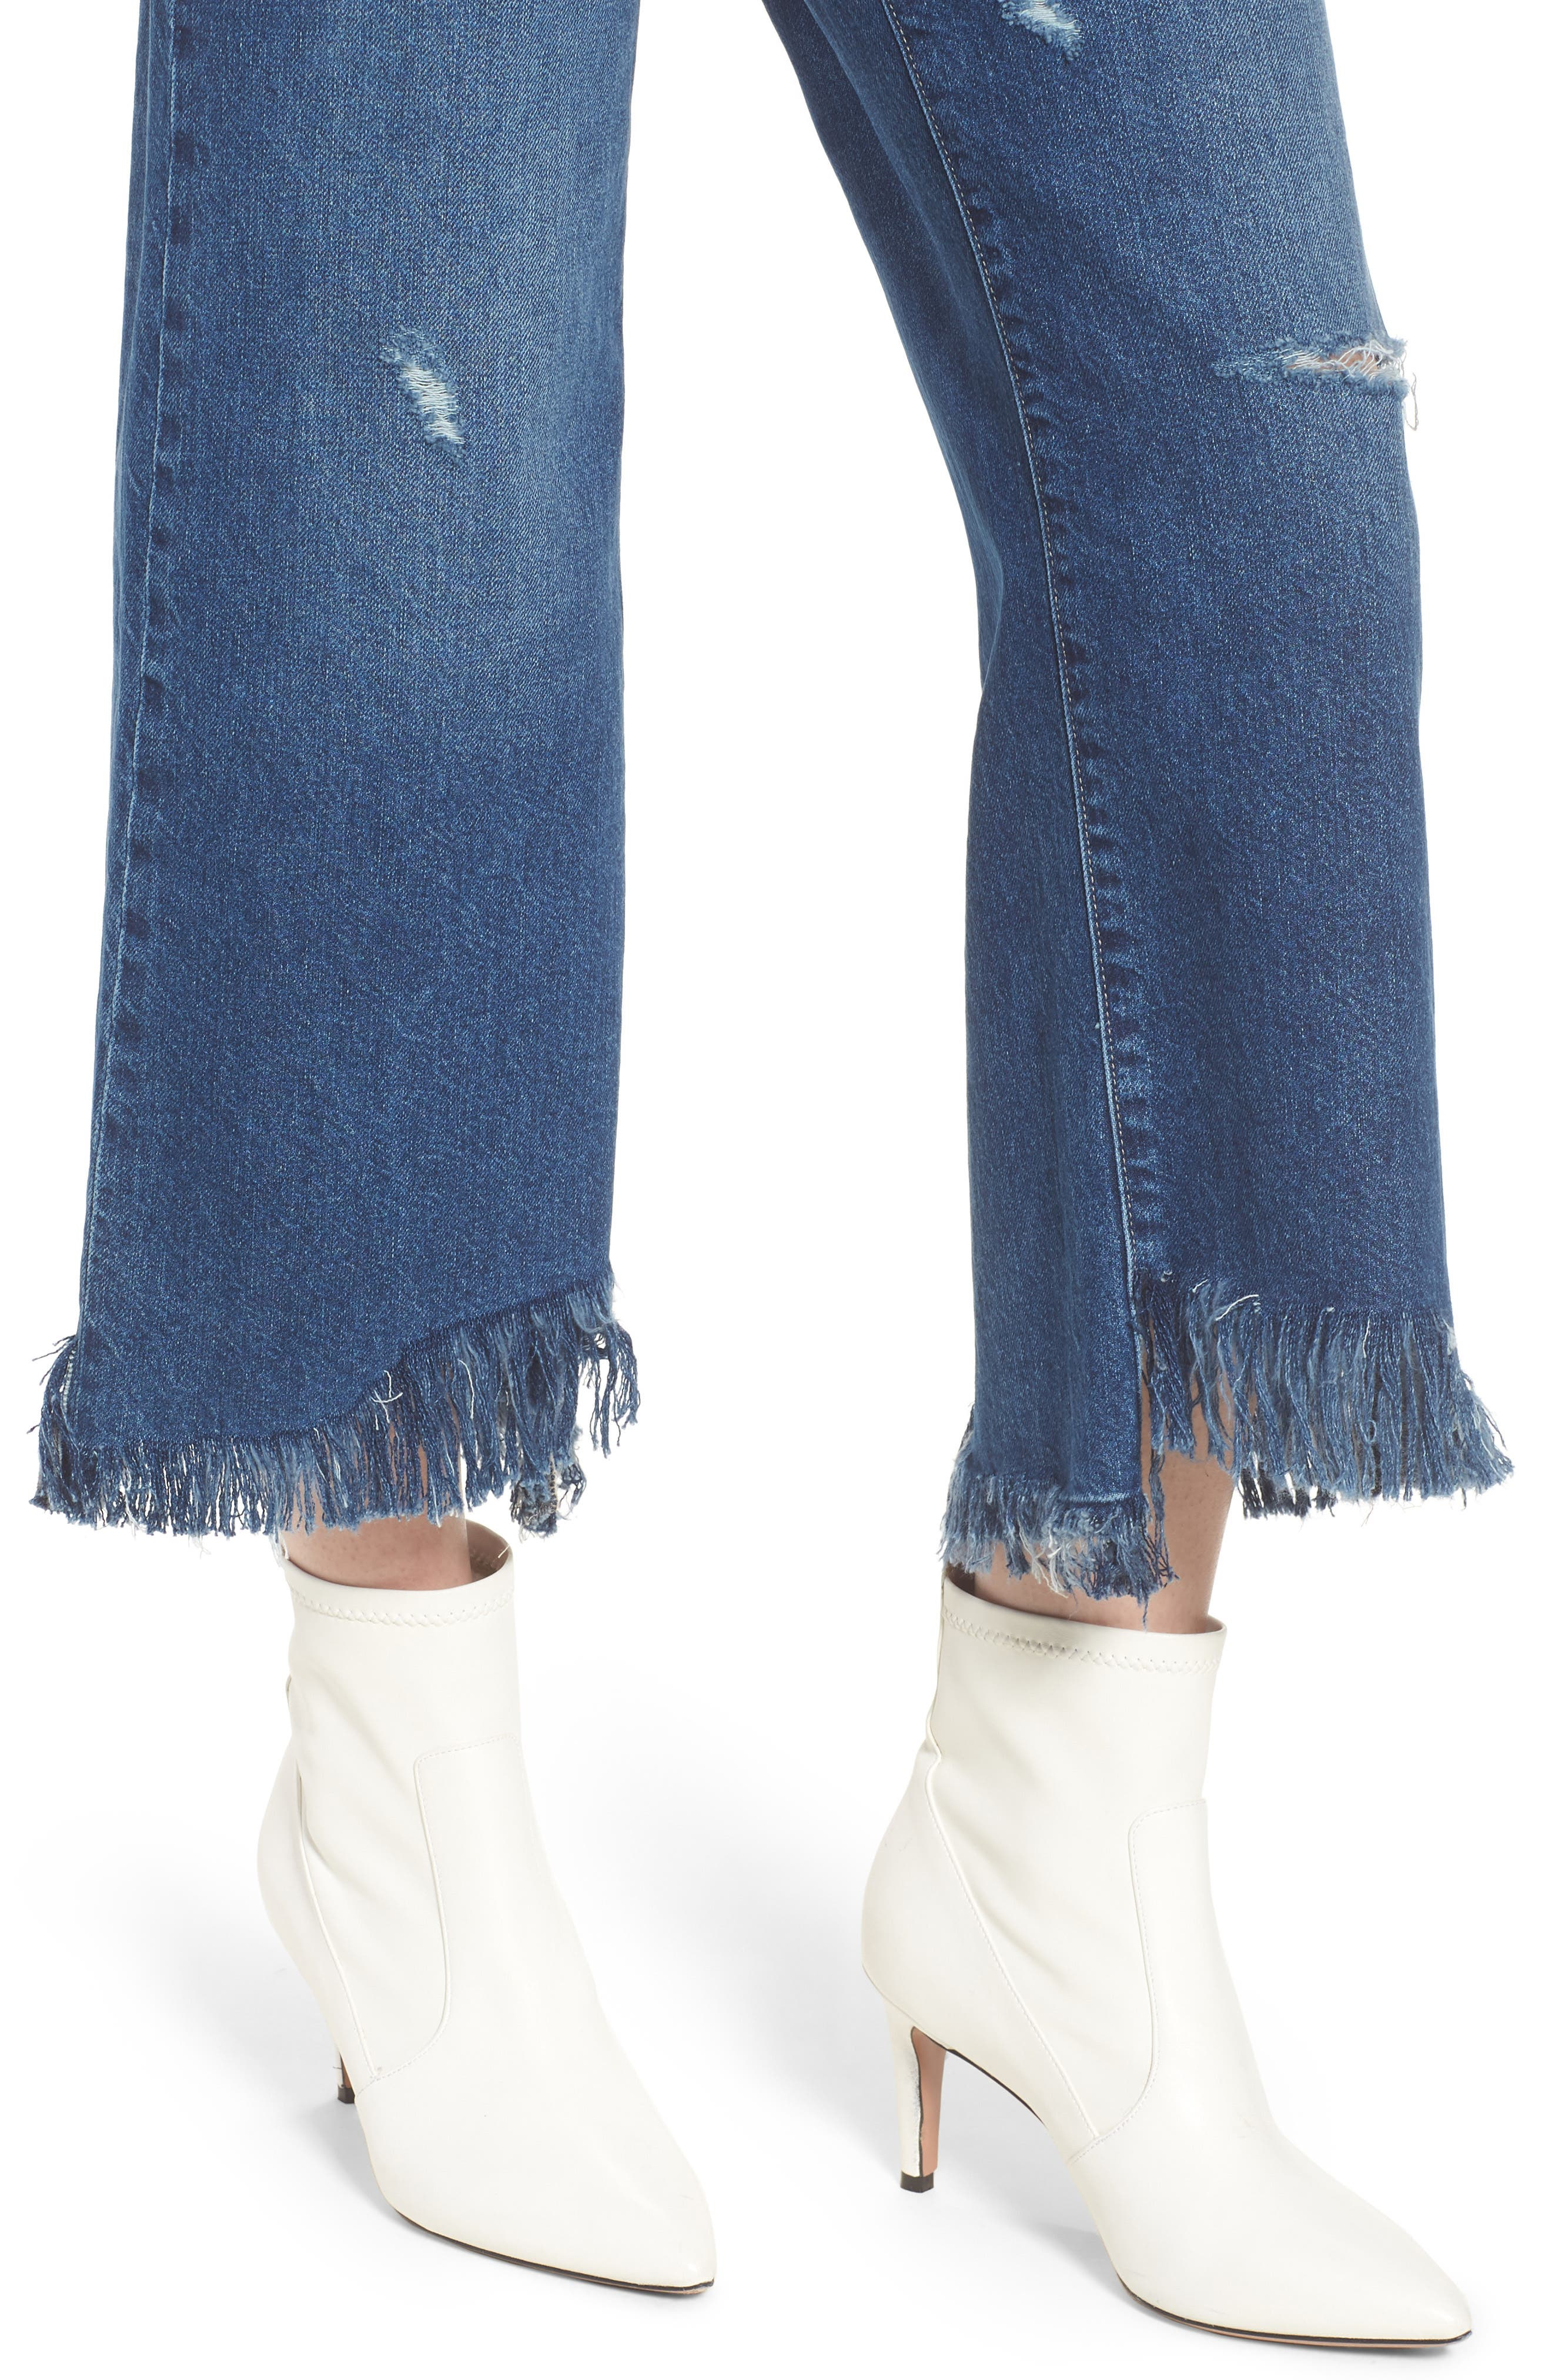 Hepburn High Waist Wide Leg Jeans,                             Alternate thumbnail 4, color,                             Goldfield